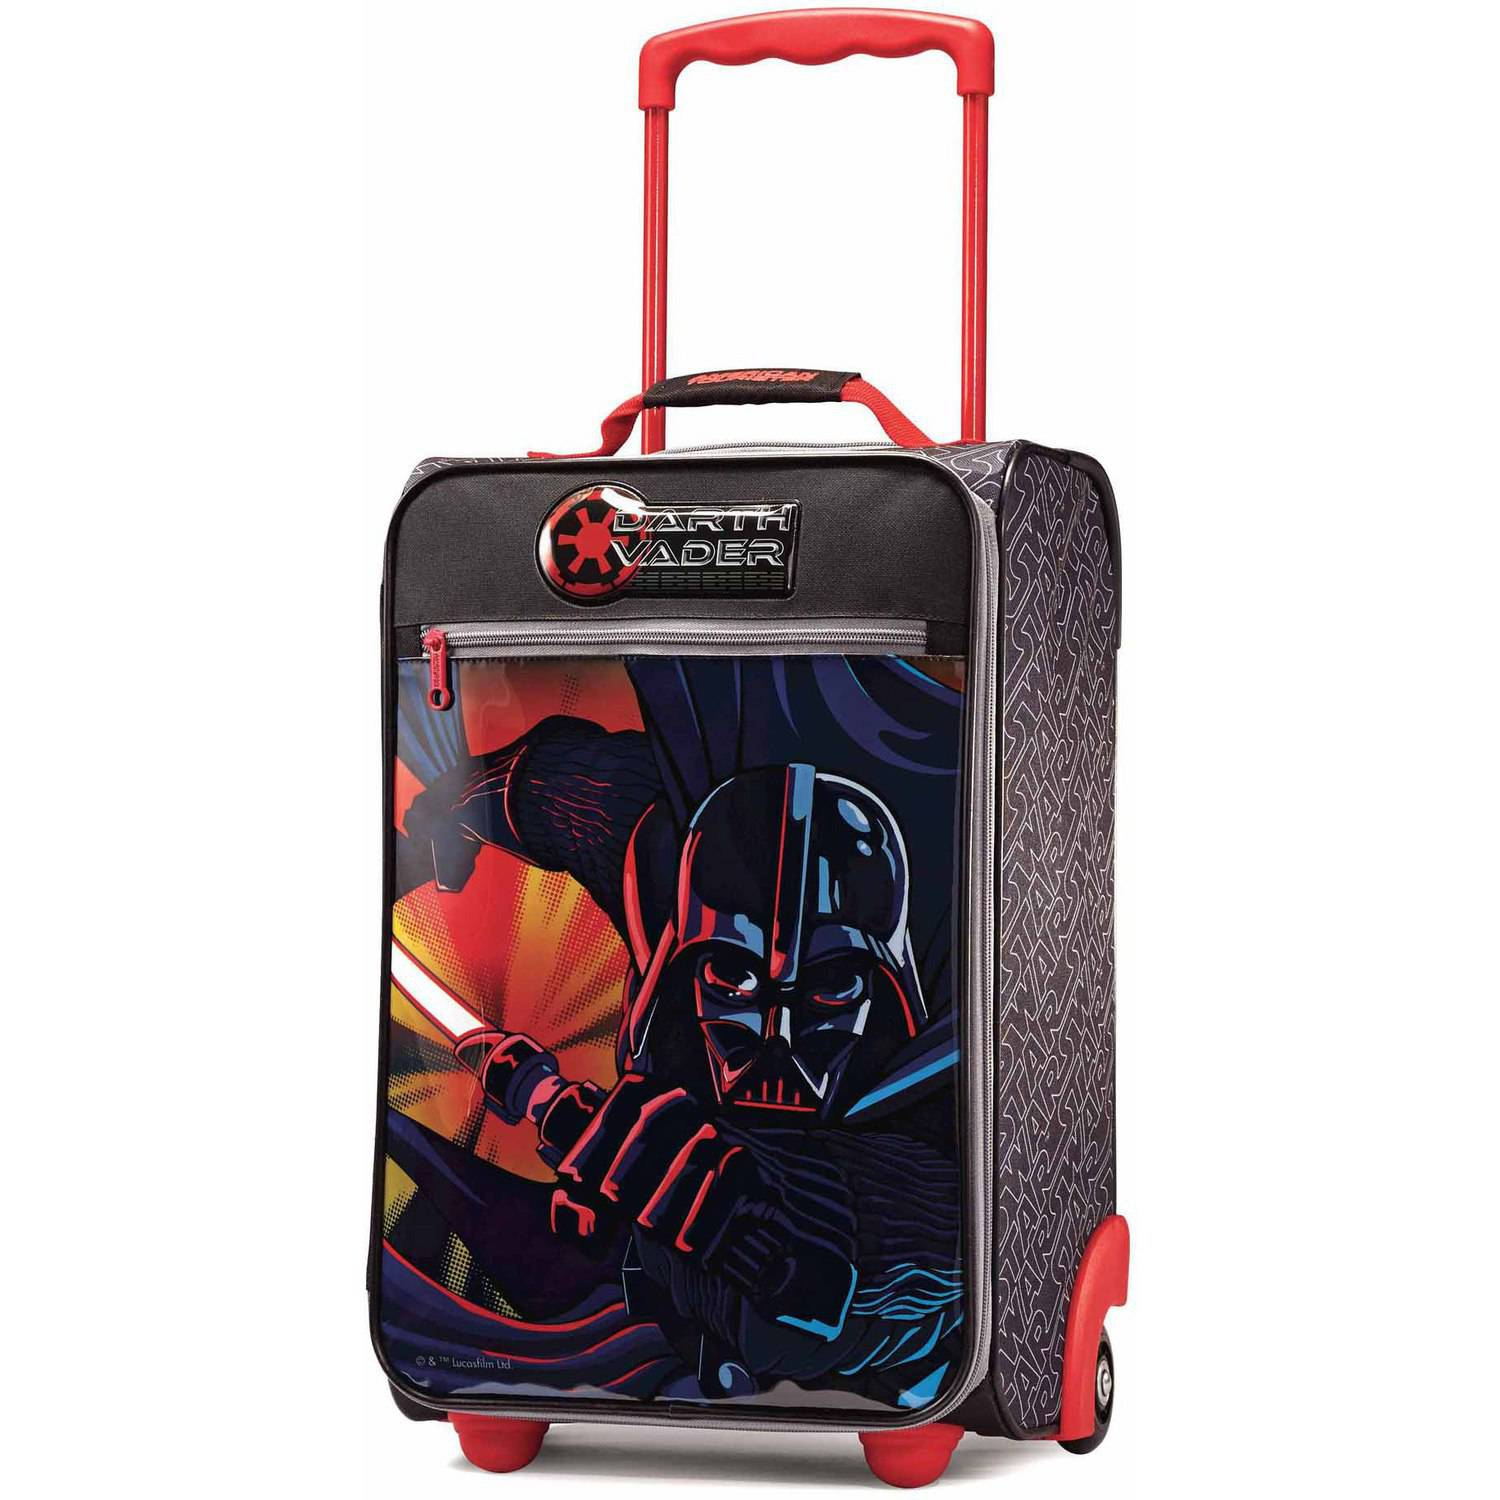 "American Tourister 18"" Star Wars Darth Vader Upright"